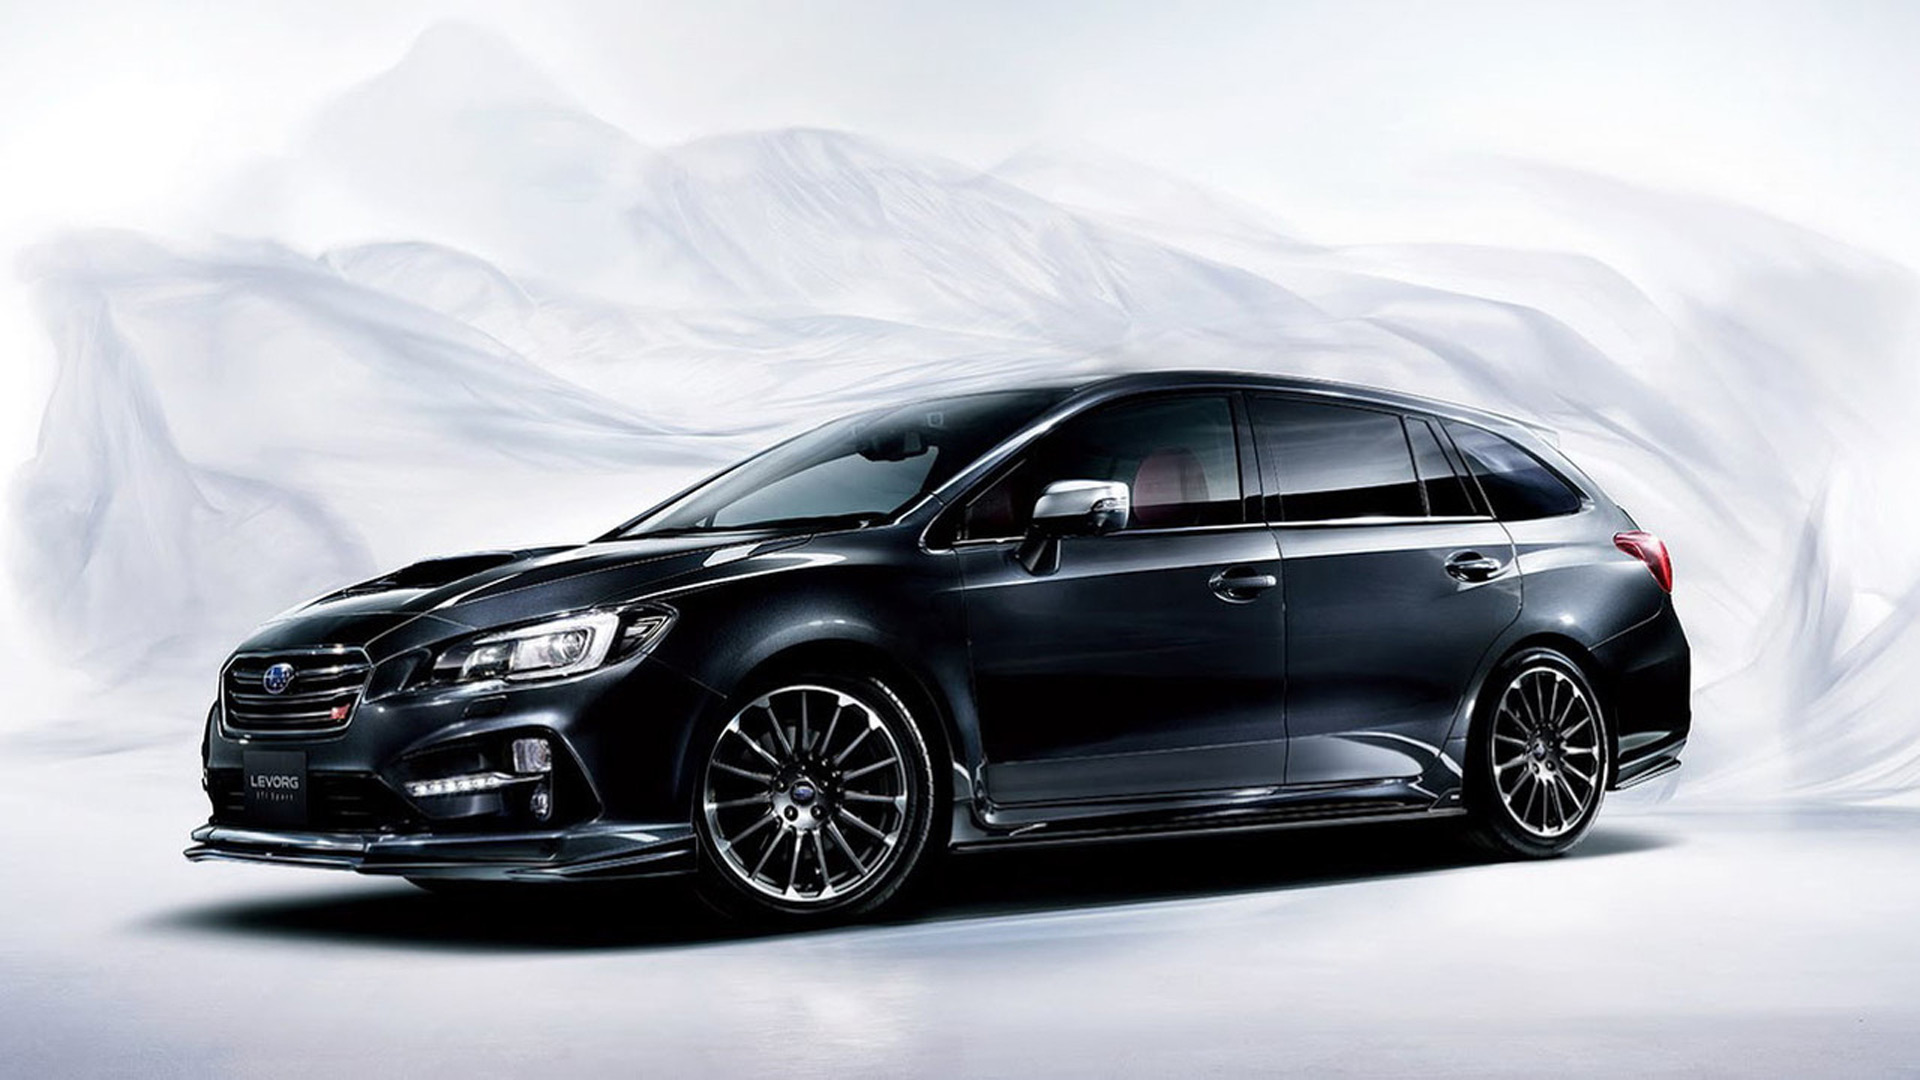 Hyundai Rm16 >> Subaru Levorg Sti Sport Wagon Review Specs Engine Price ...